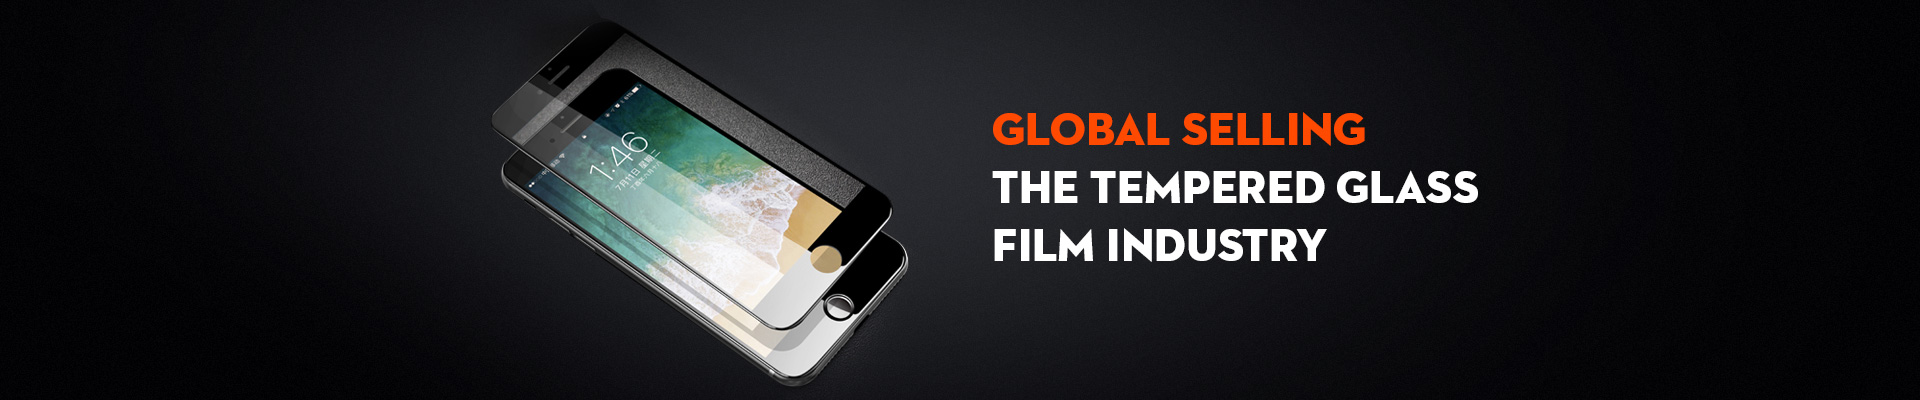 GLOBAL SELLING  THE TEMPERED GLASS FILM INDUSTRY